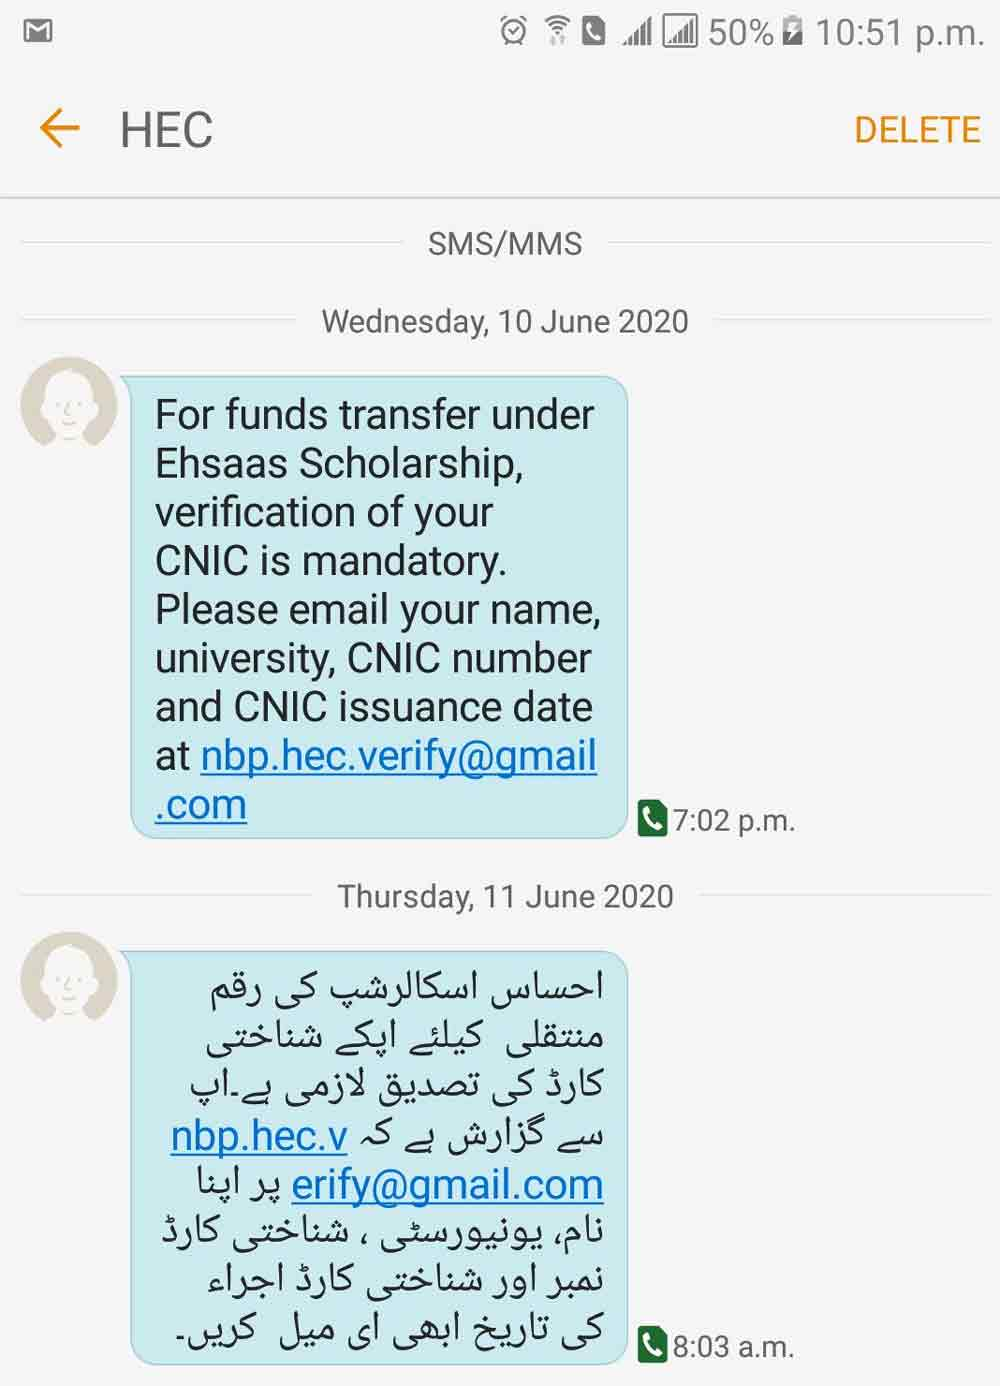 Mobile-SMS-from-HEC-for-Ehsaas-Scholarships